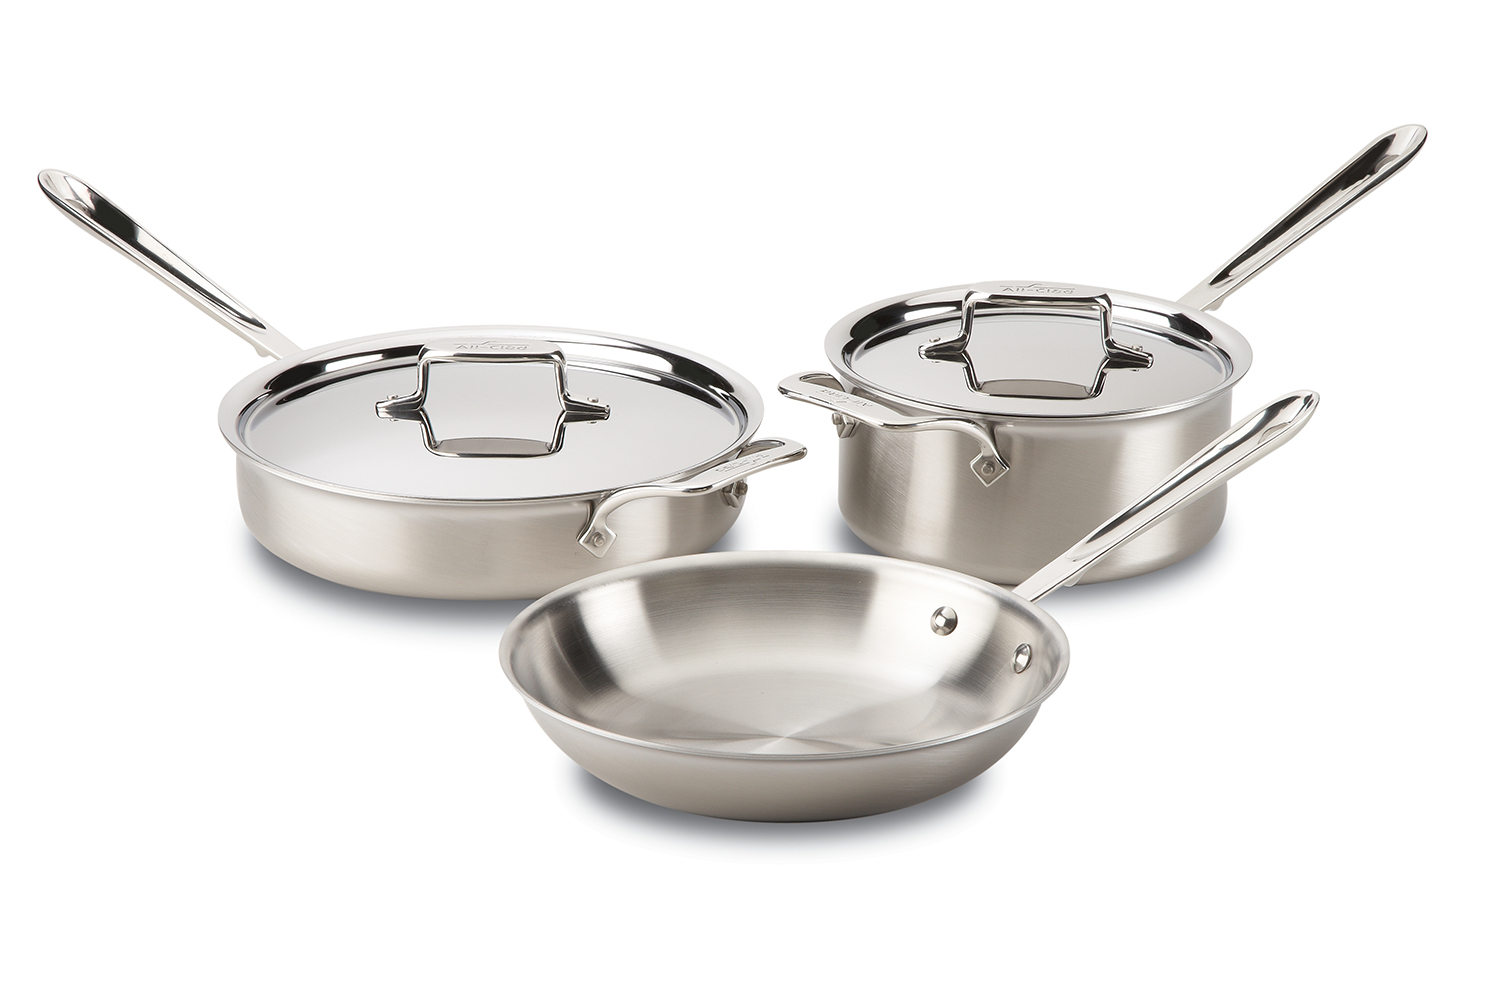 All-Clad d5 Brushed Stainless 5 Piece Cookware Set